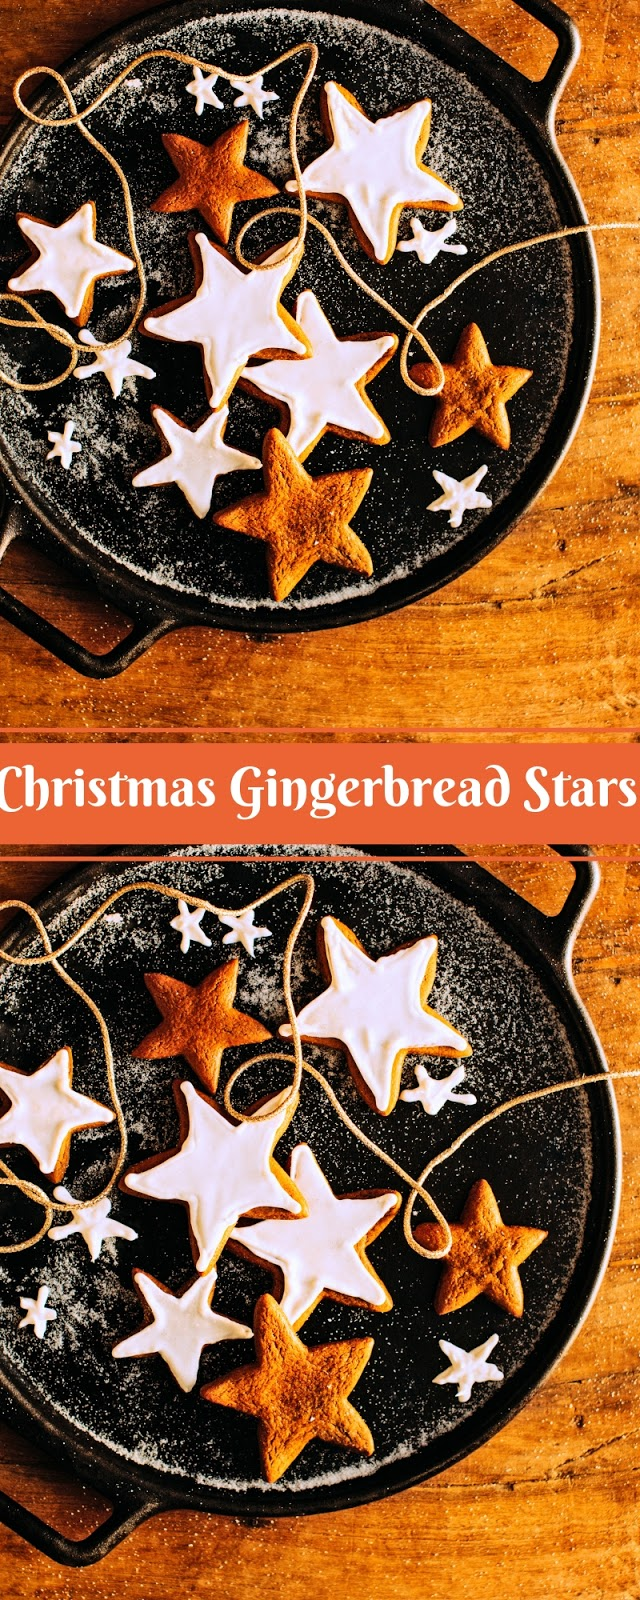 Christmas Gingerbread Stars